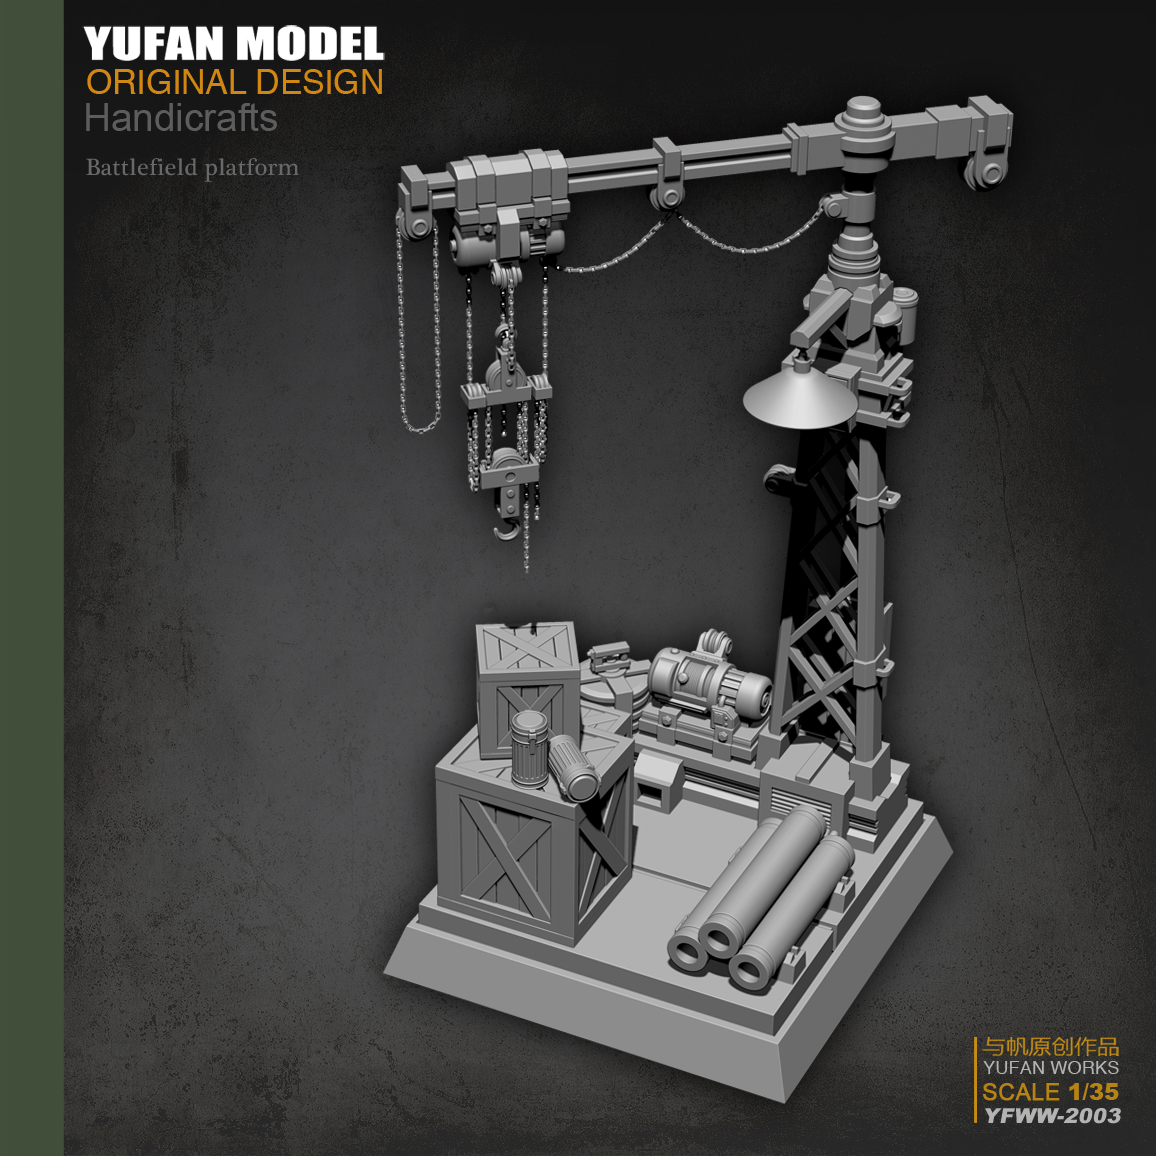 Yufan Model 1/35  Plant Platform Resin Model Yfww-2003